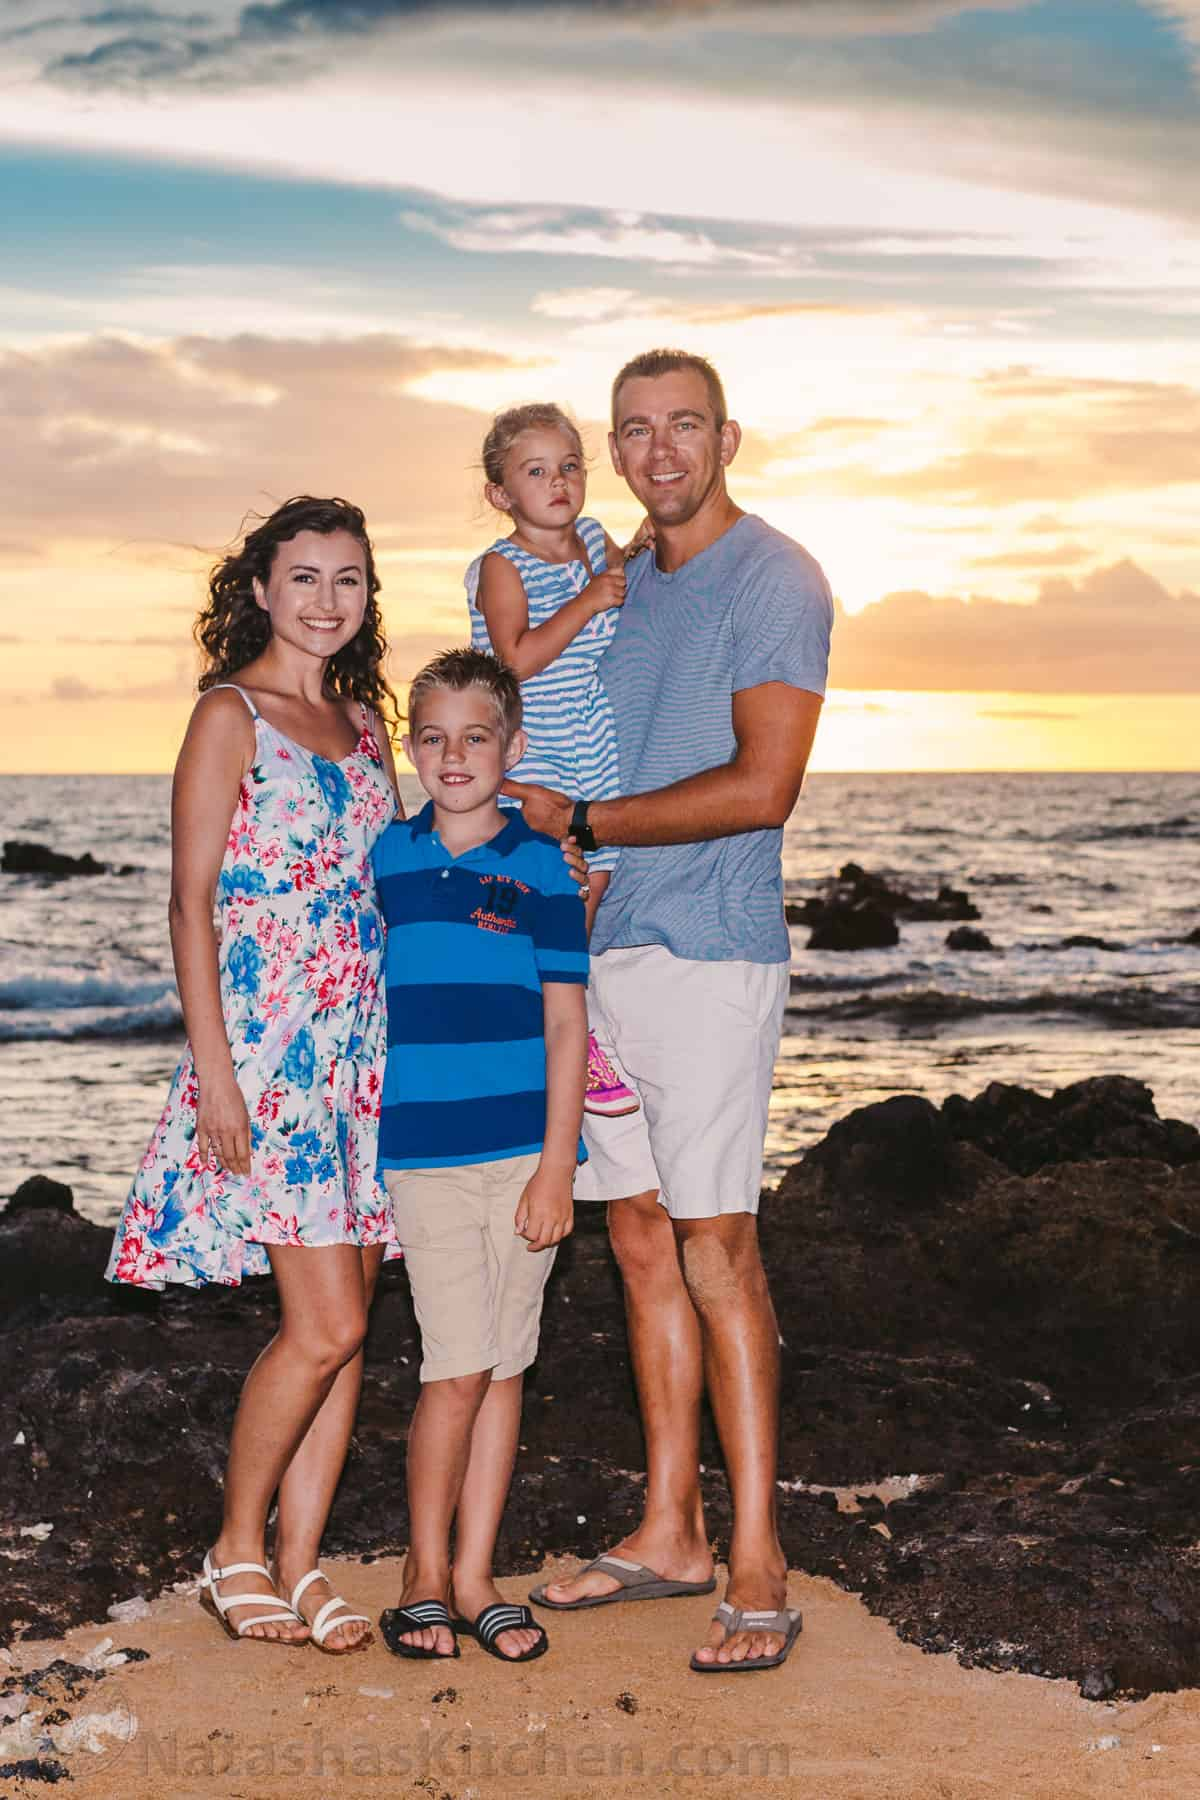 Maui Family Vacation 2018 VIDEO  NatashasKitchencom